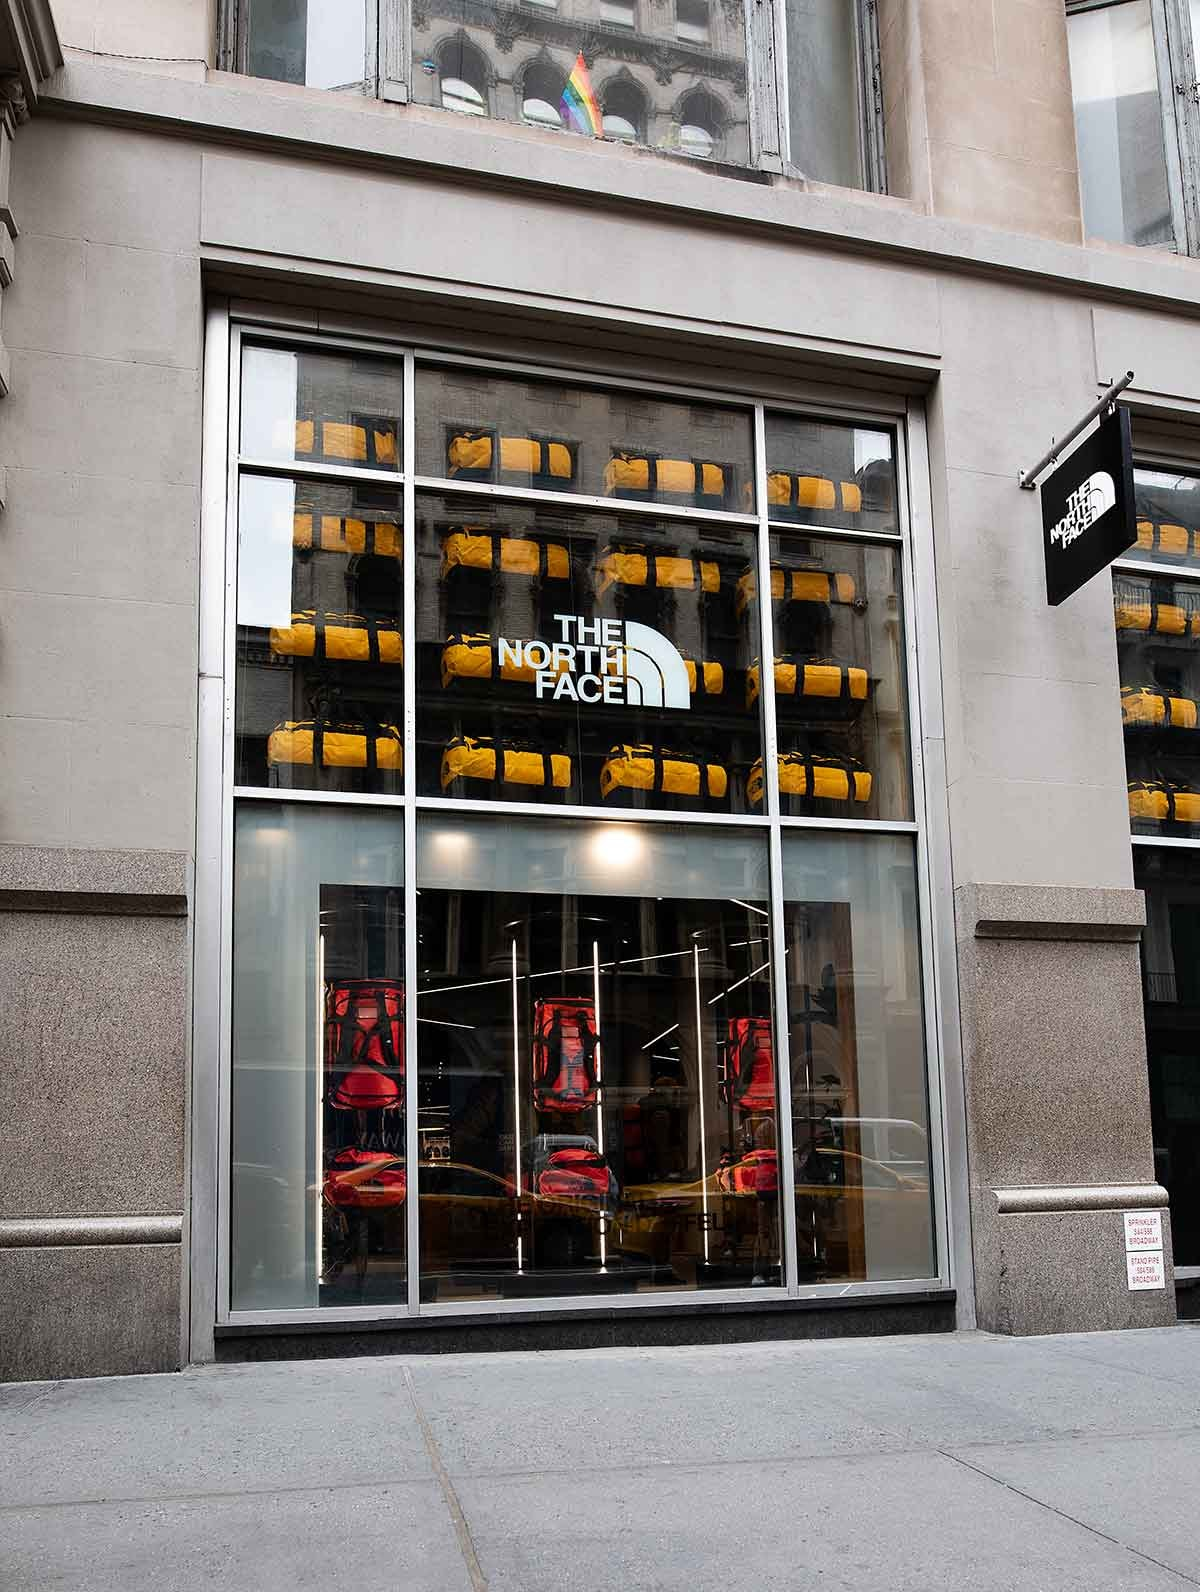 The North Face unveils new basecamp-themed retail concept in Soho